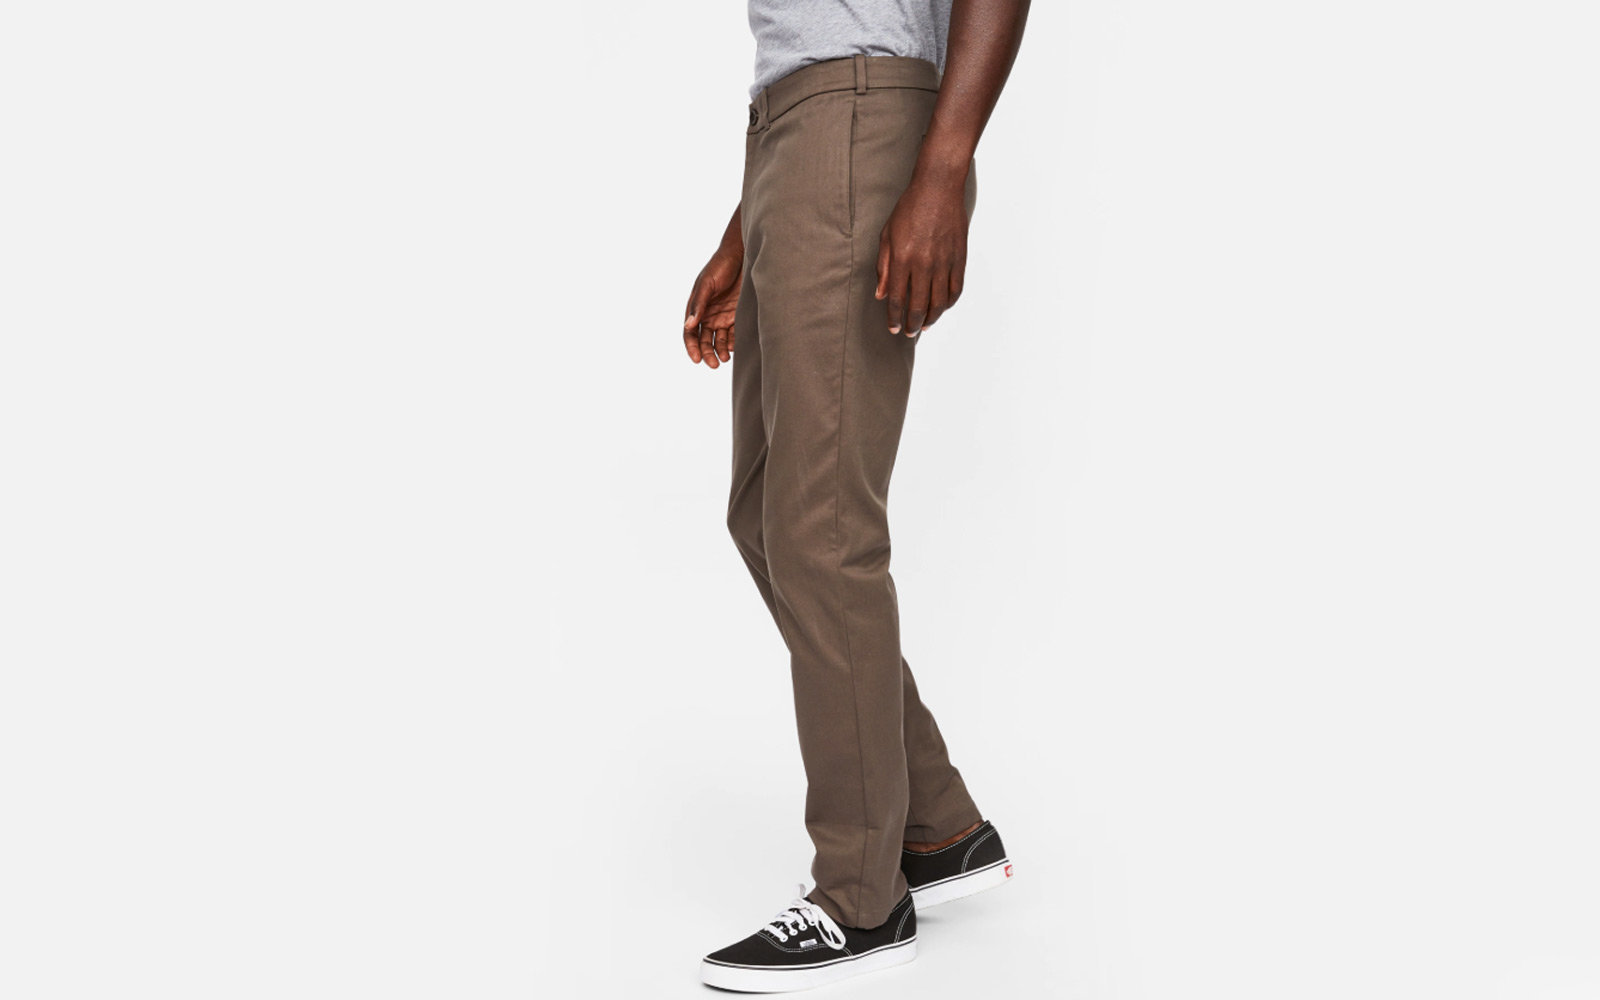 Best Technical Pant: Hill City Everyday Pant